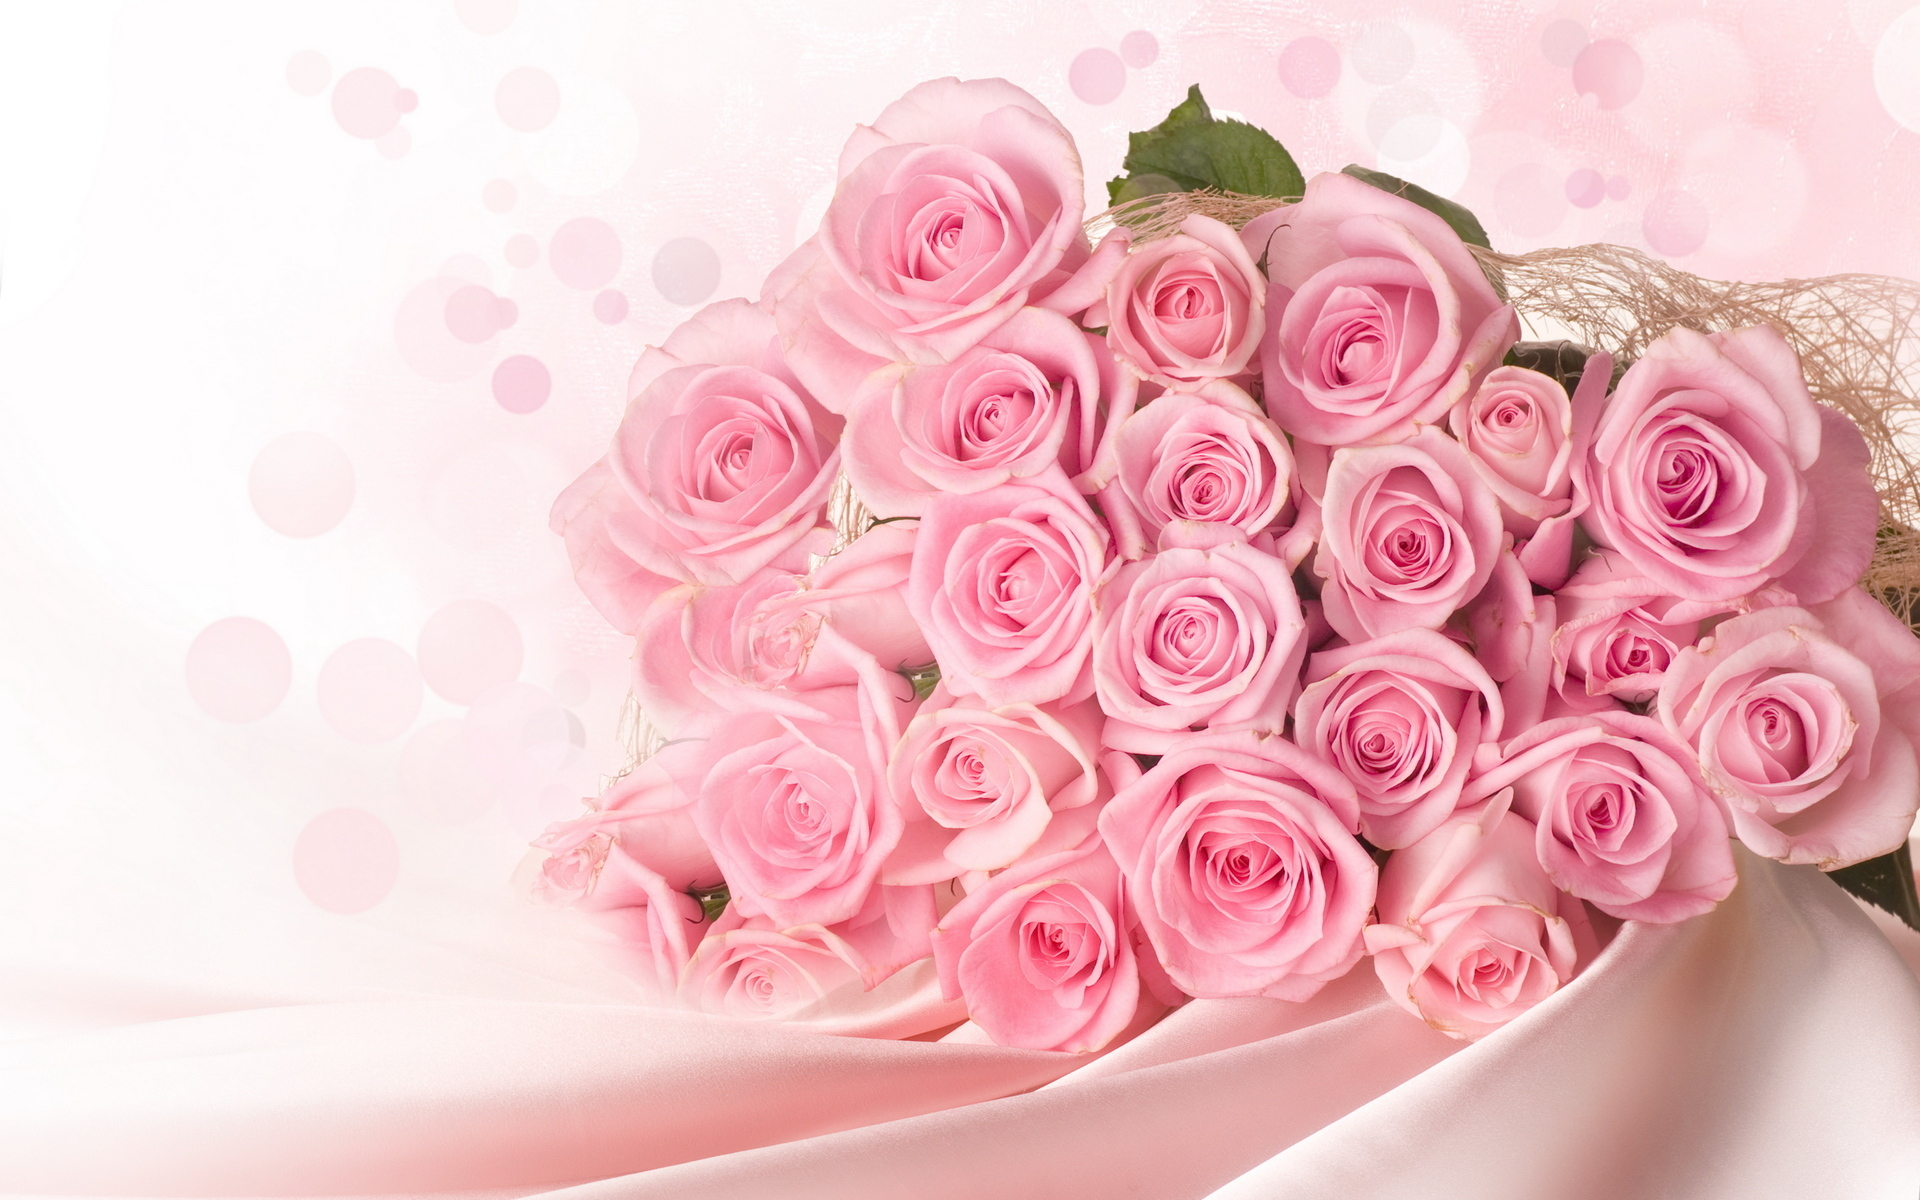 Pink Roses Background   Wallpaper High Definition High Quality 1920x1200